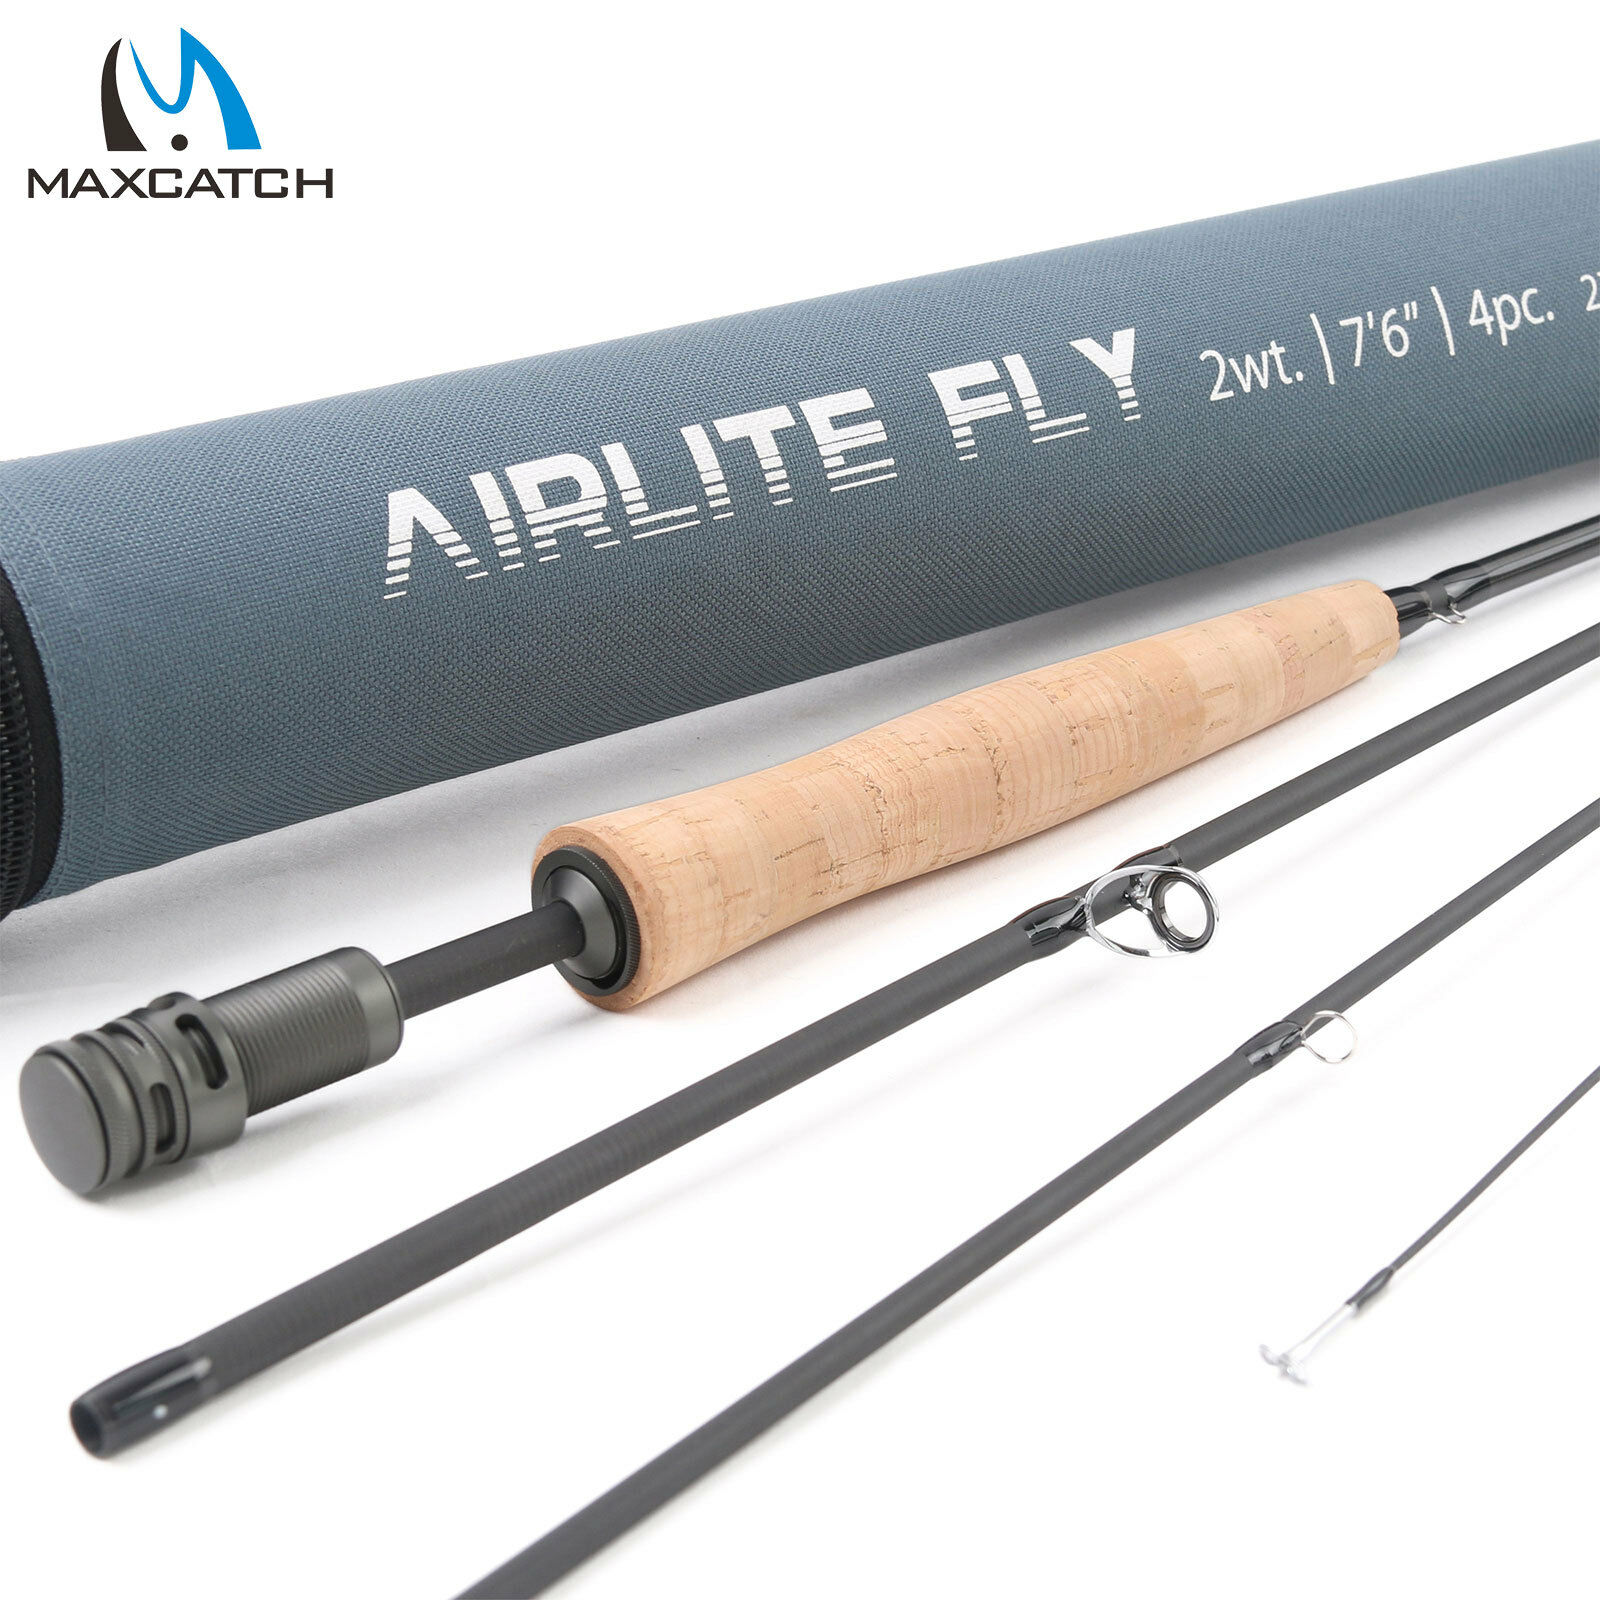 M MAXIMUMCATCH Maxcatch Traveler Fly Fishing Rod 7-Piece IM10 Carbon Rod with Cordura Tube in 5//6//7//8 Weight